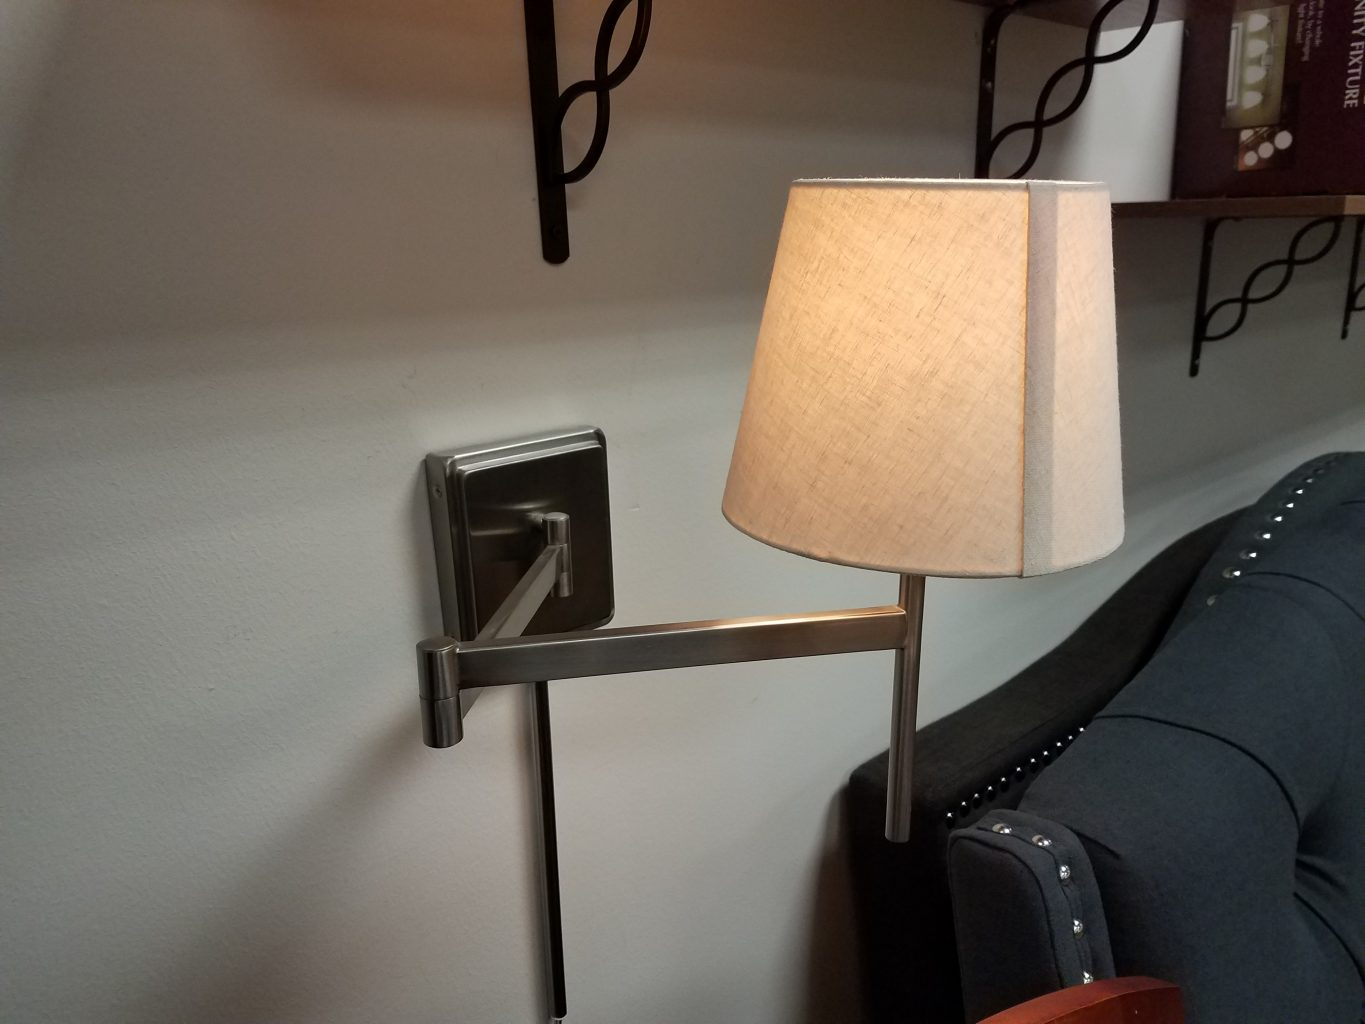 Adjustable Arm Wall Light Wall Lamp With Adjustable Arm